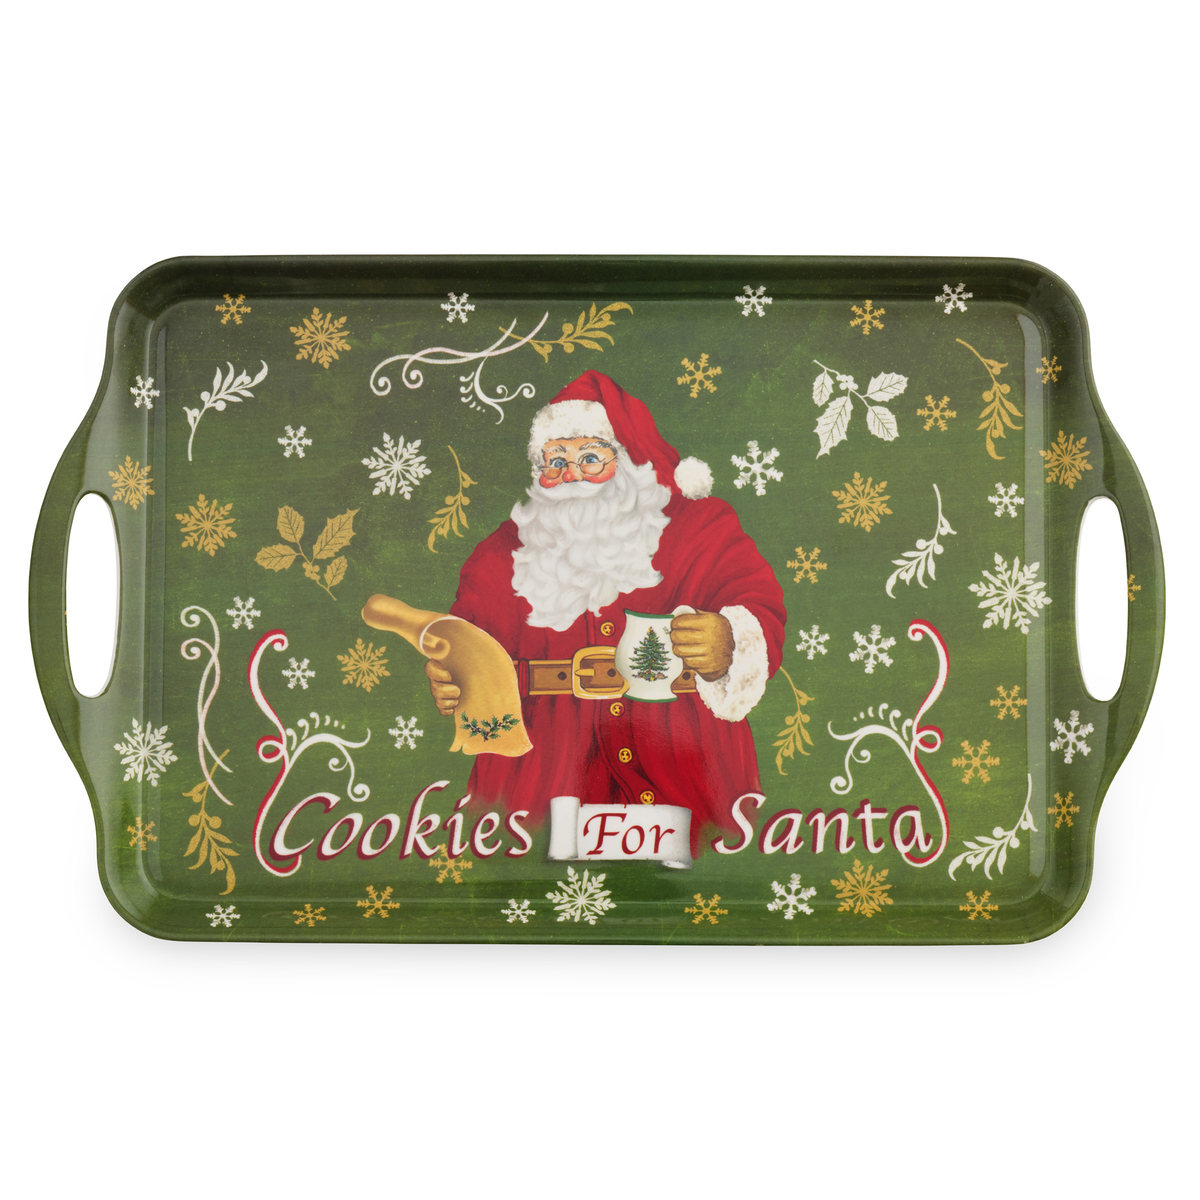 Pimpernel Christmas Tree Melamine Tray Cookie For Santa image number null